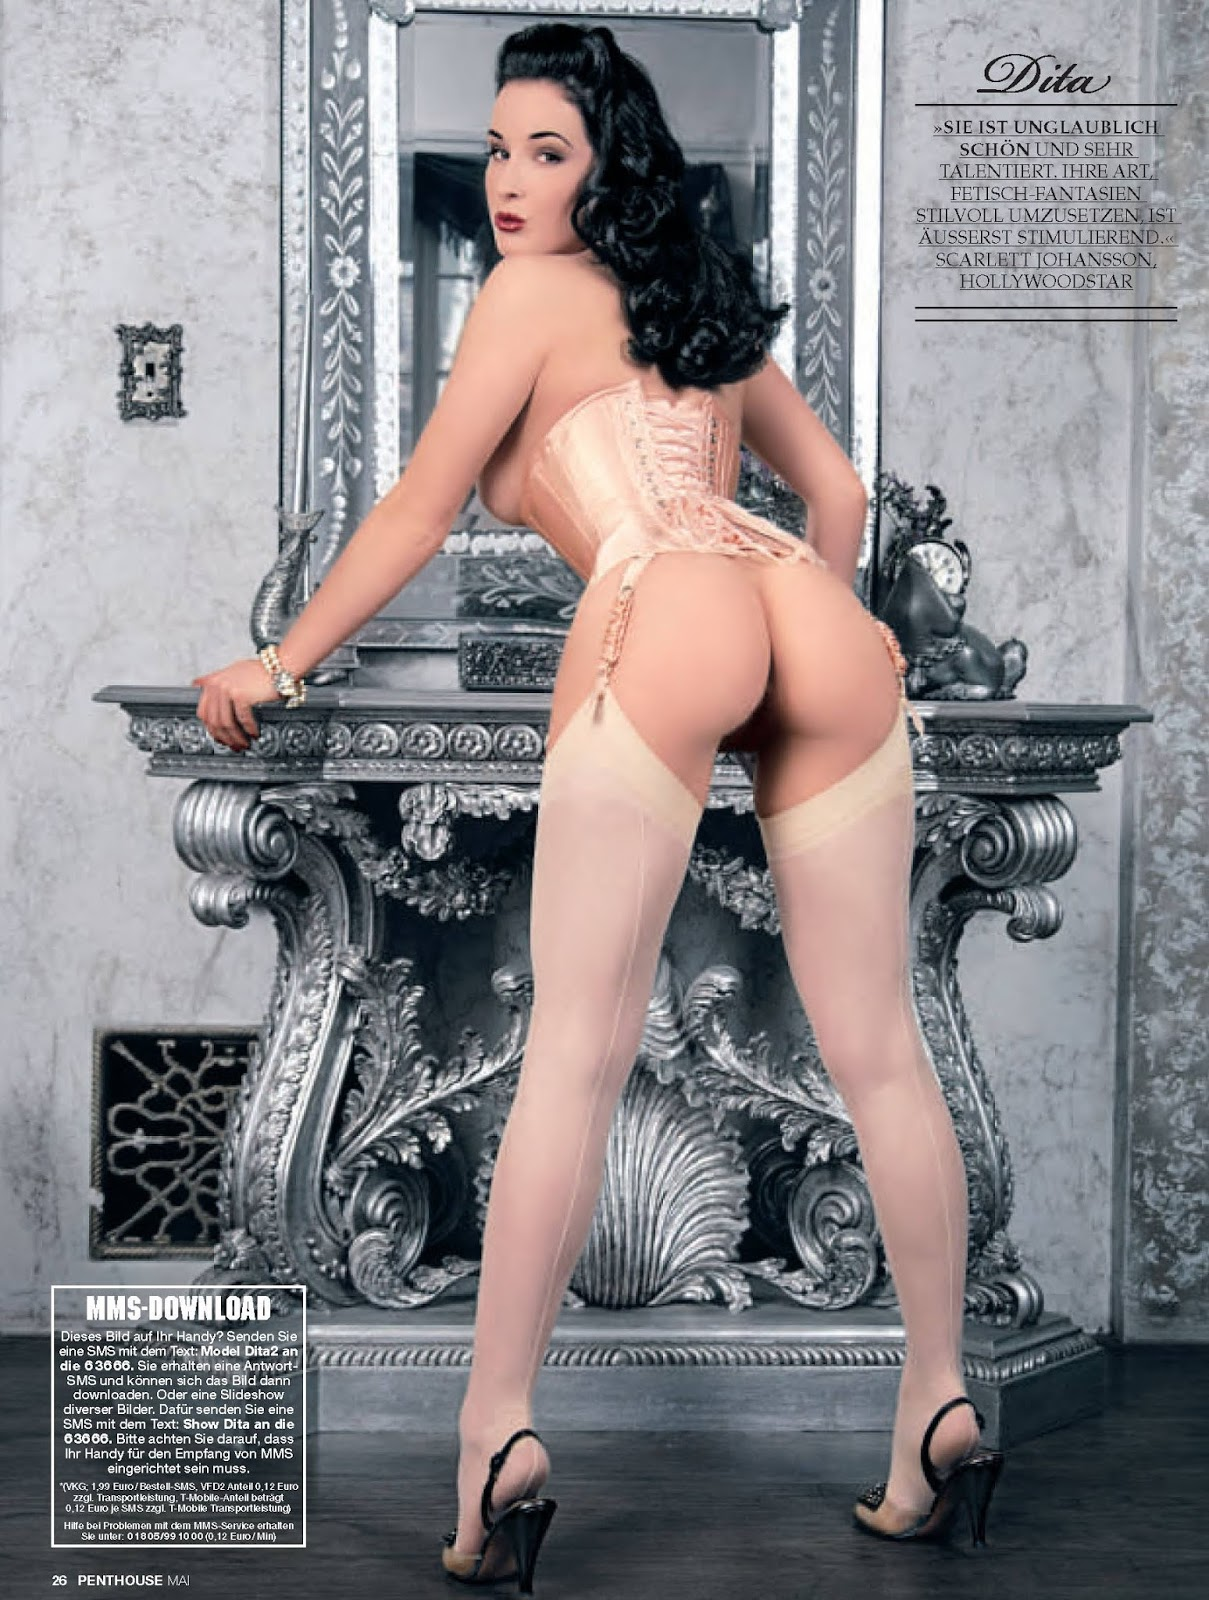 Dita Von Teese Penthouse Germany May